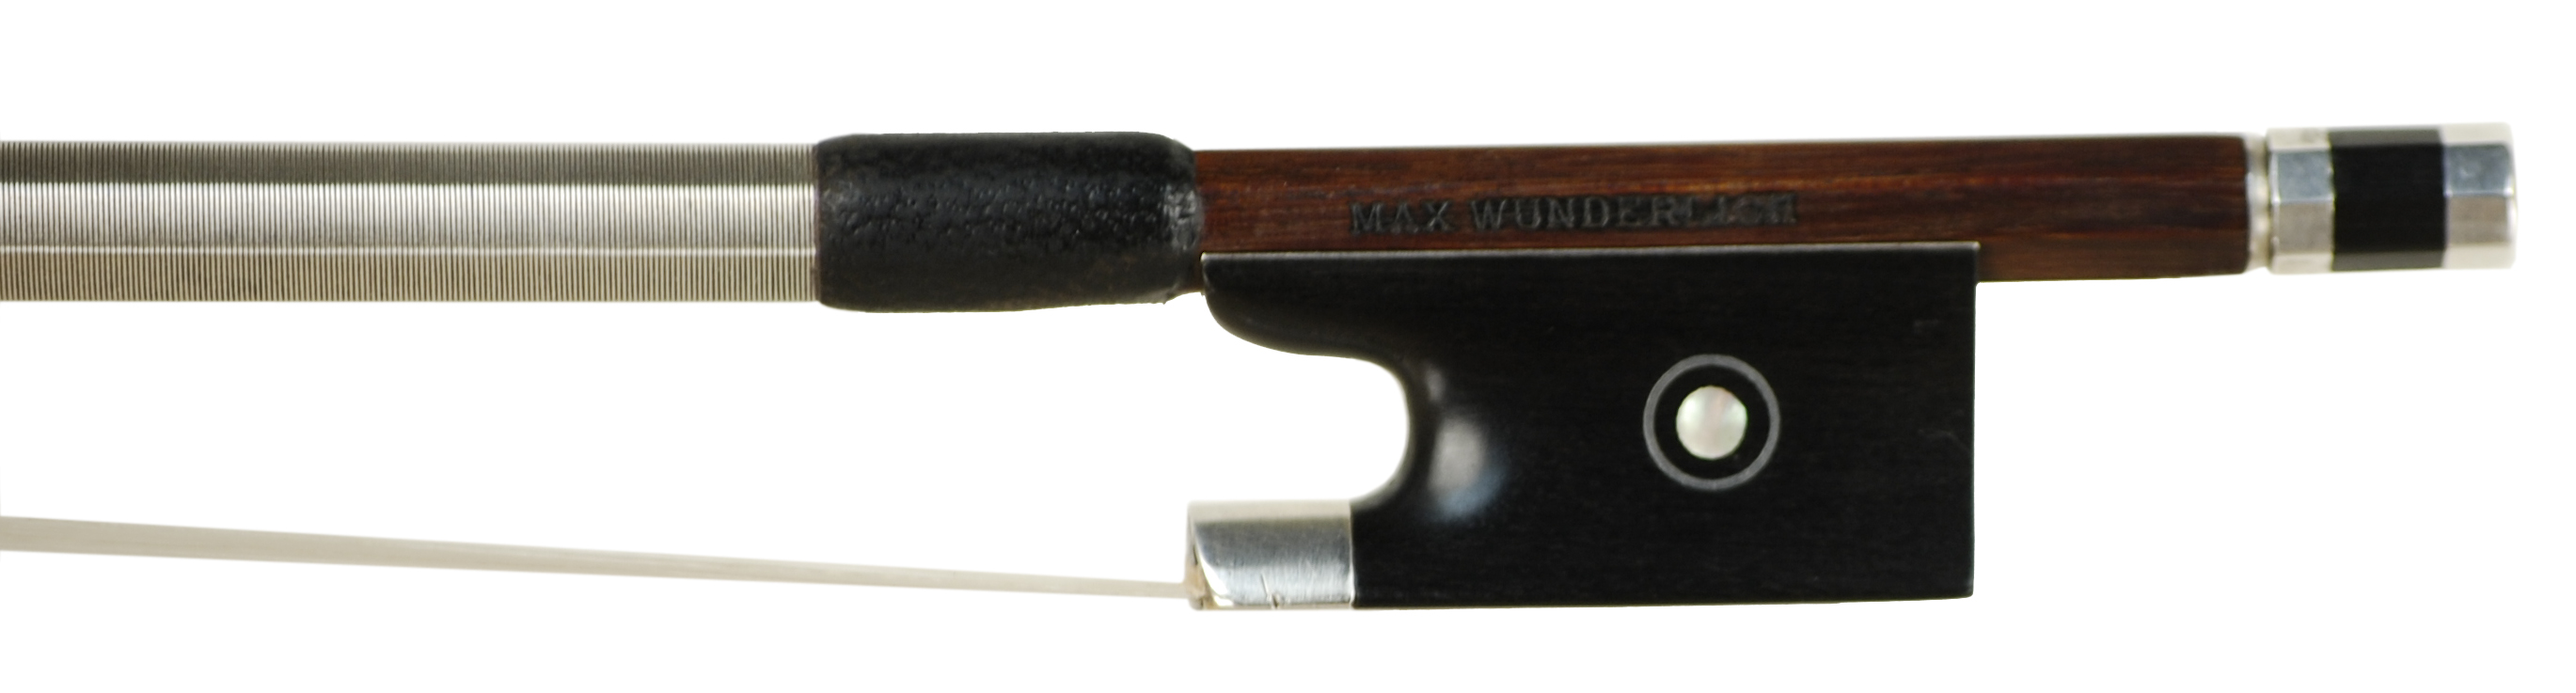 Max Wunderlich 58 7g VN Bow Frog